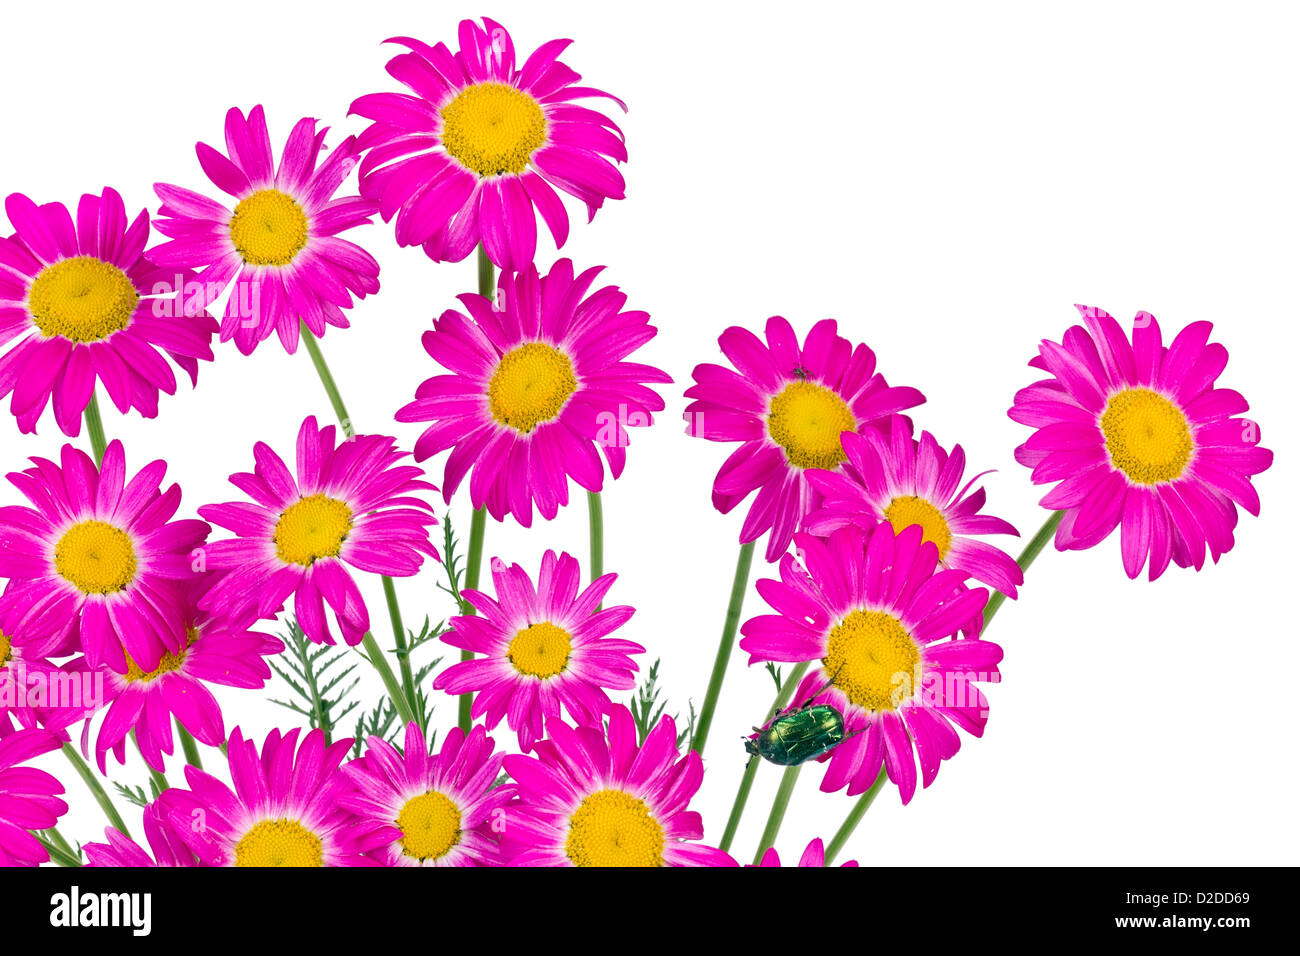 Spring Pink Daisies Flowers Border With Green Bug Isolated Stock